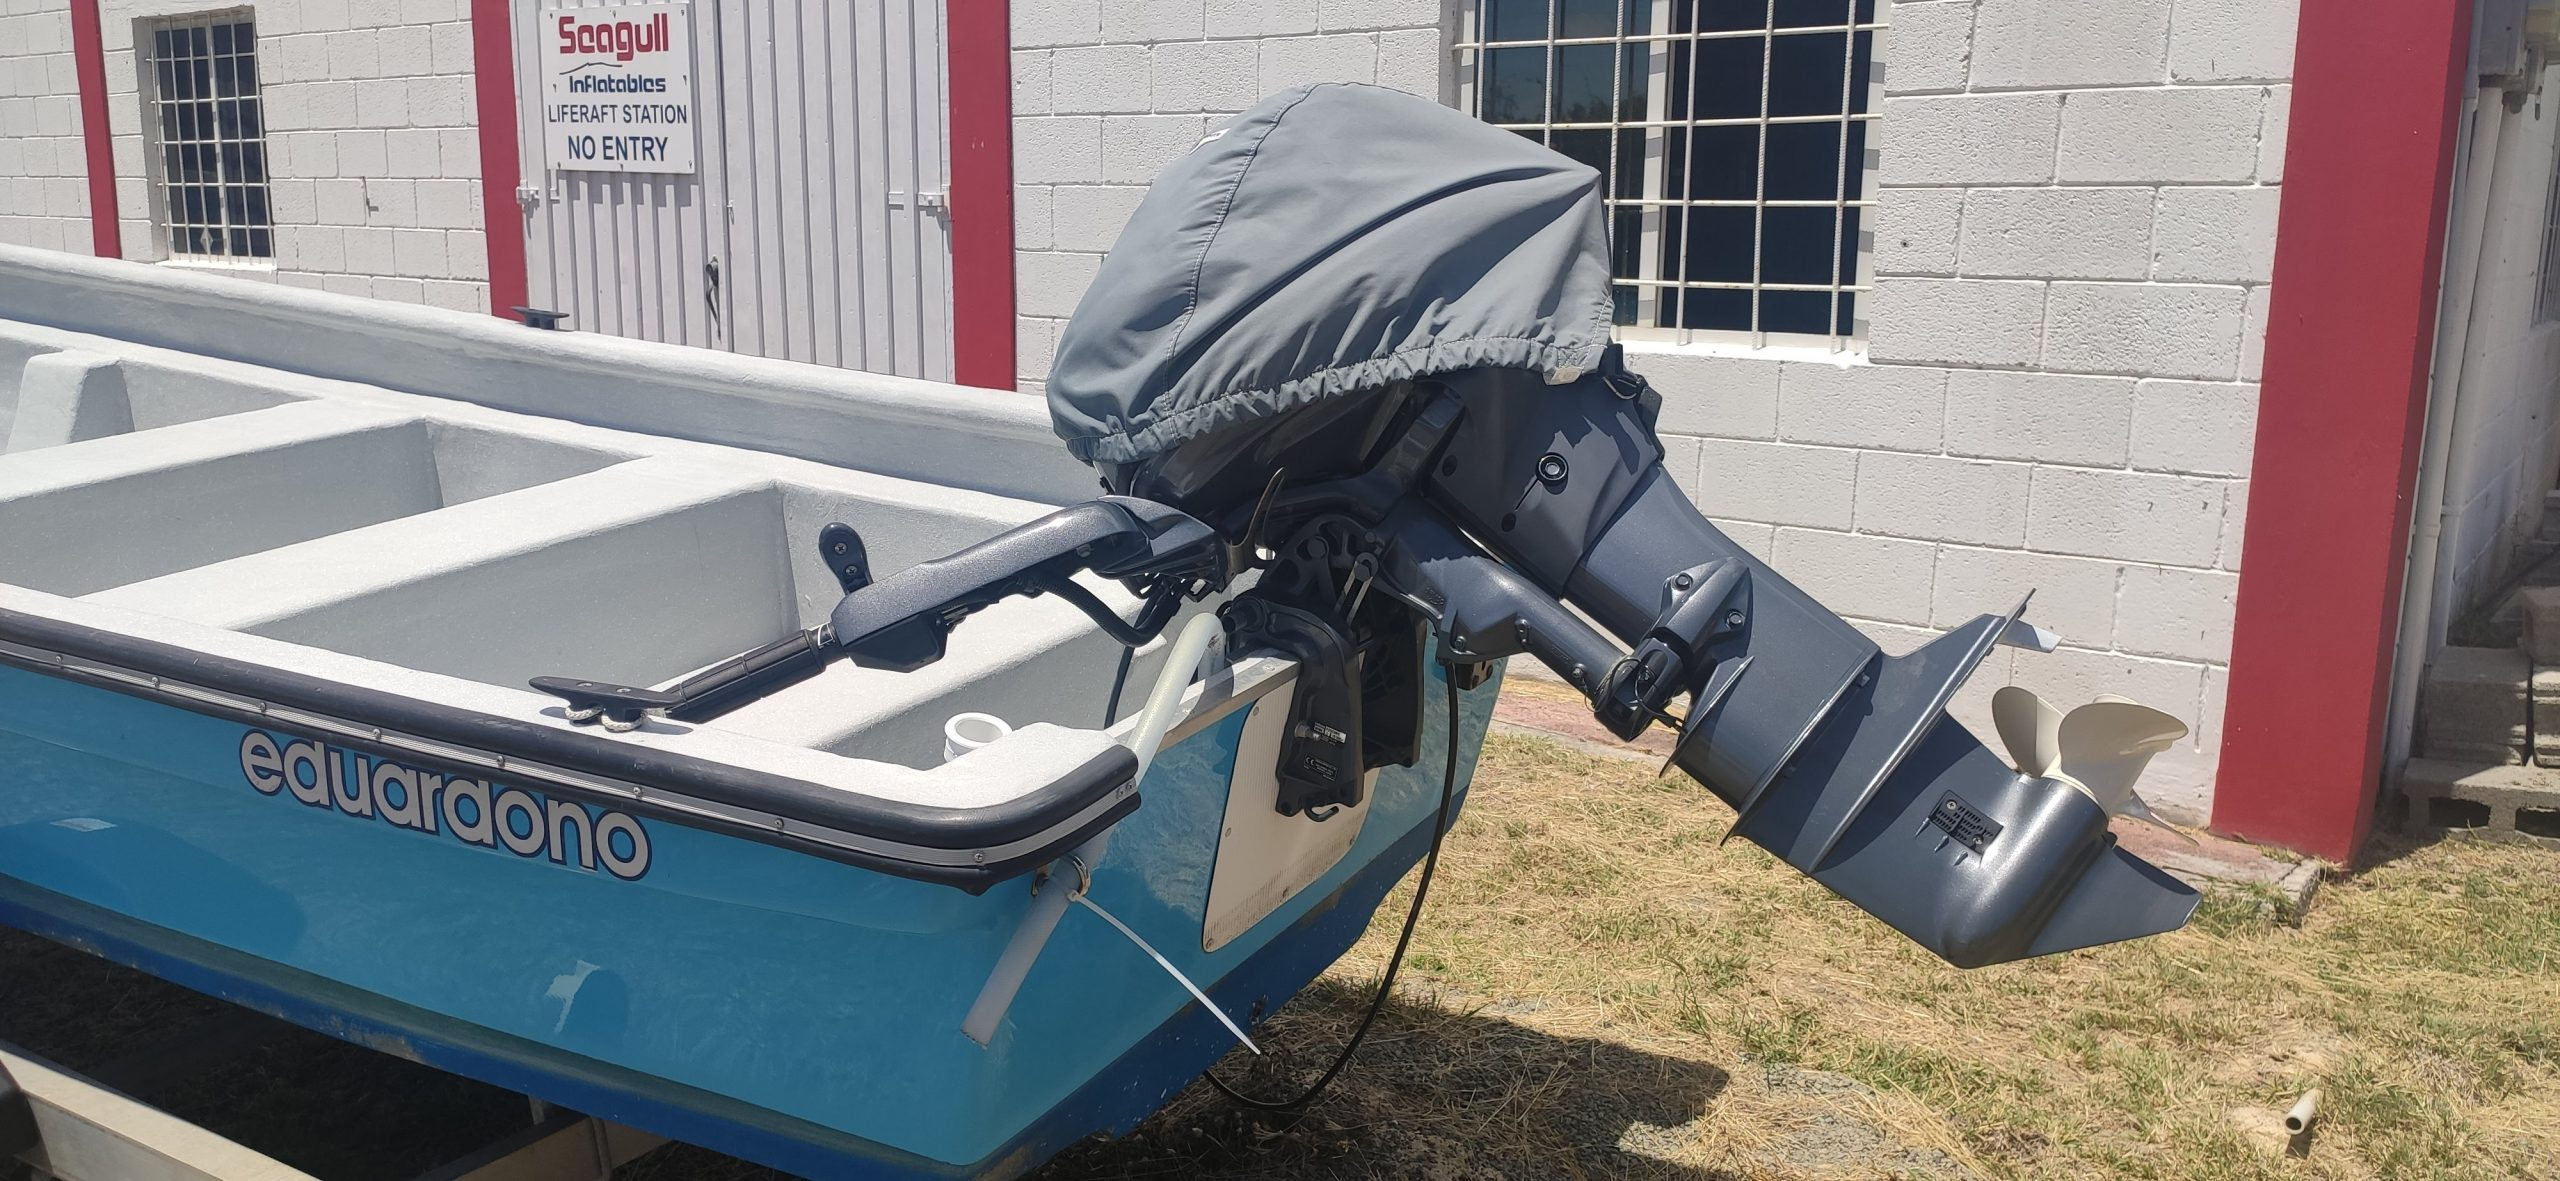 A whole lot of coastal fishing boat for the price